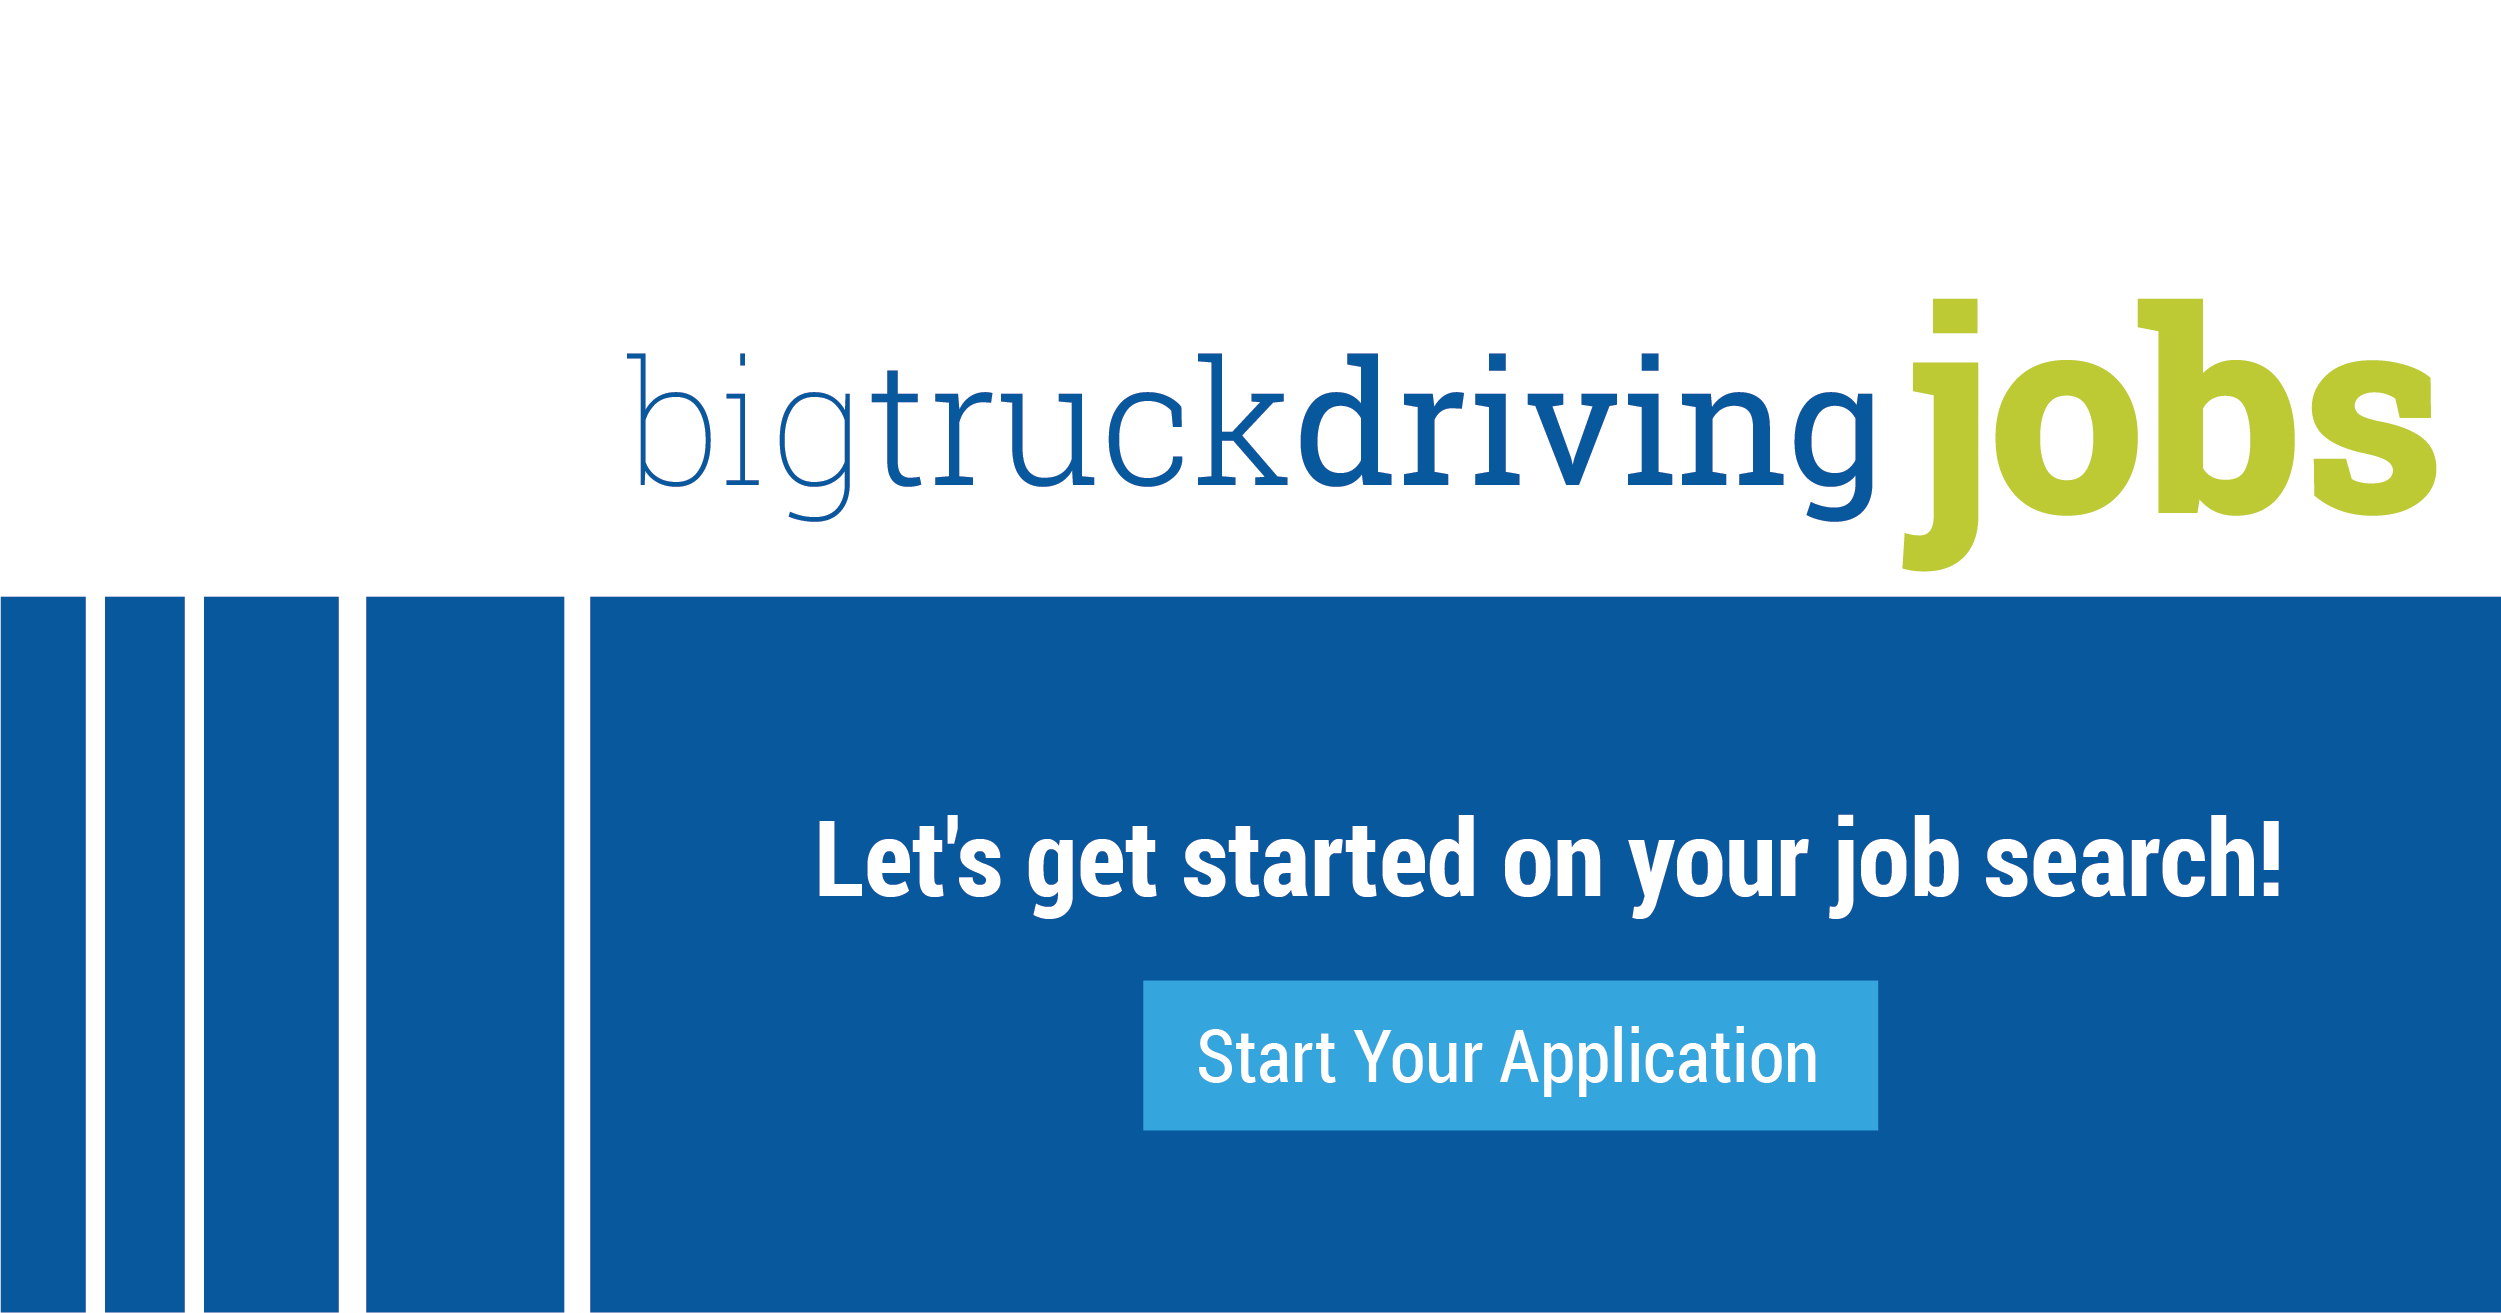 Apply For Local Truck Driving Jobs By Clicking Here